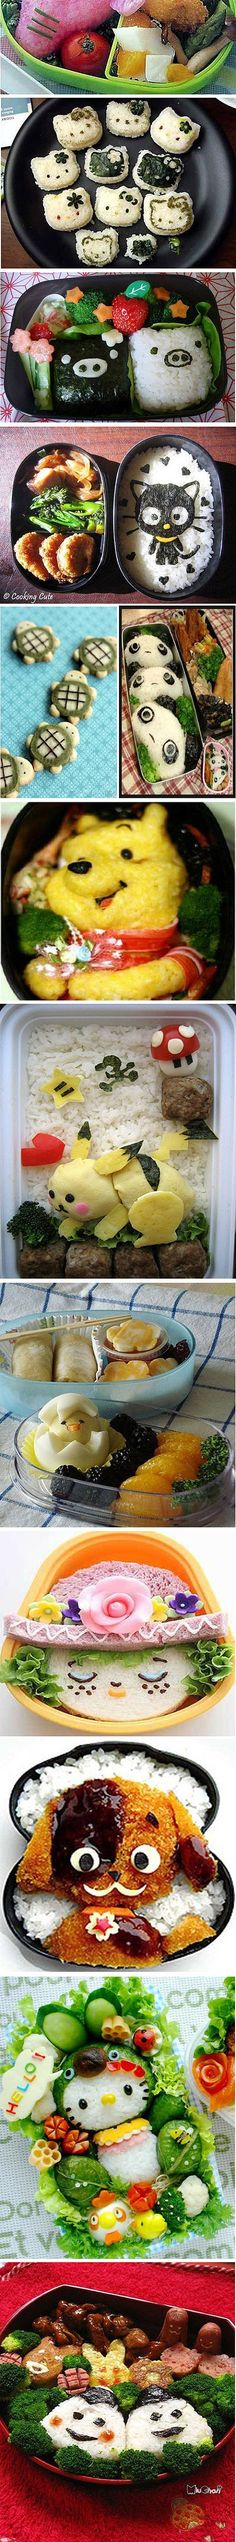 Kyaraben (or chara-ben), a shortened form of character bento | JAPAN KAWAII BENTO FOOD